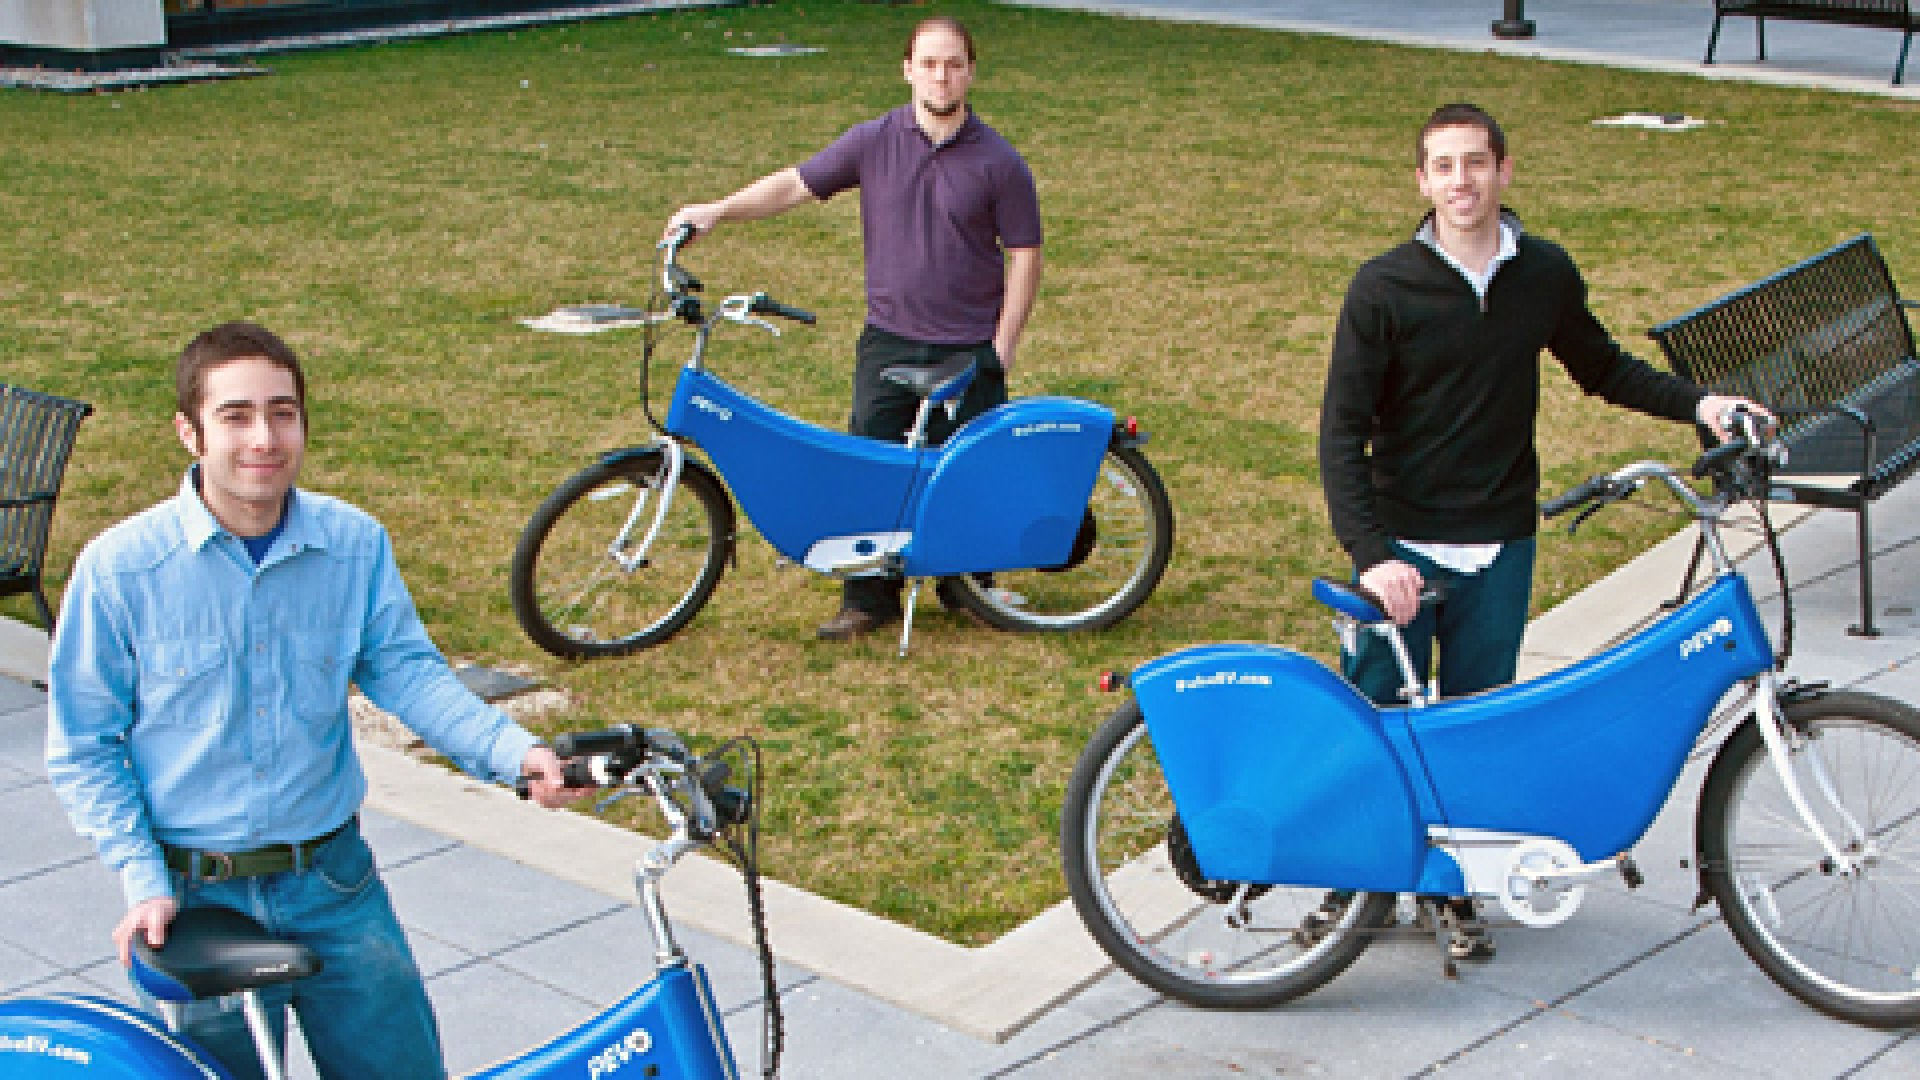 """""""We think we're right at the beginning of when the electrical vehicle market is really going to open up,""""say Micah Toll, pictured with his co-founders Thorin Tobiassen (center) and Max Pless (left)."""